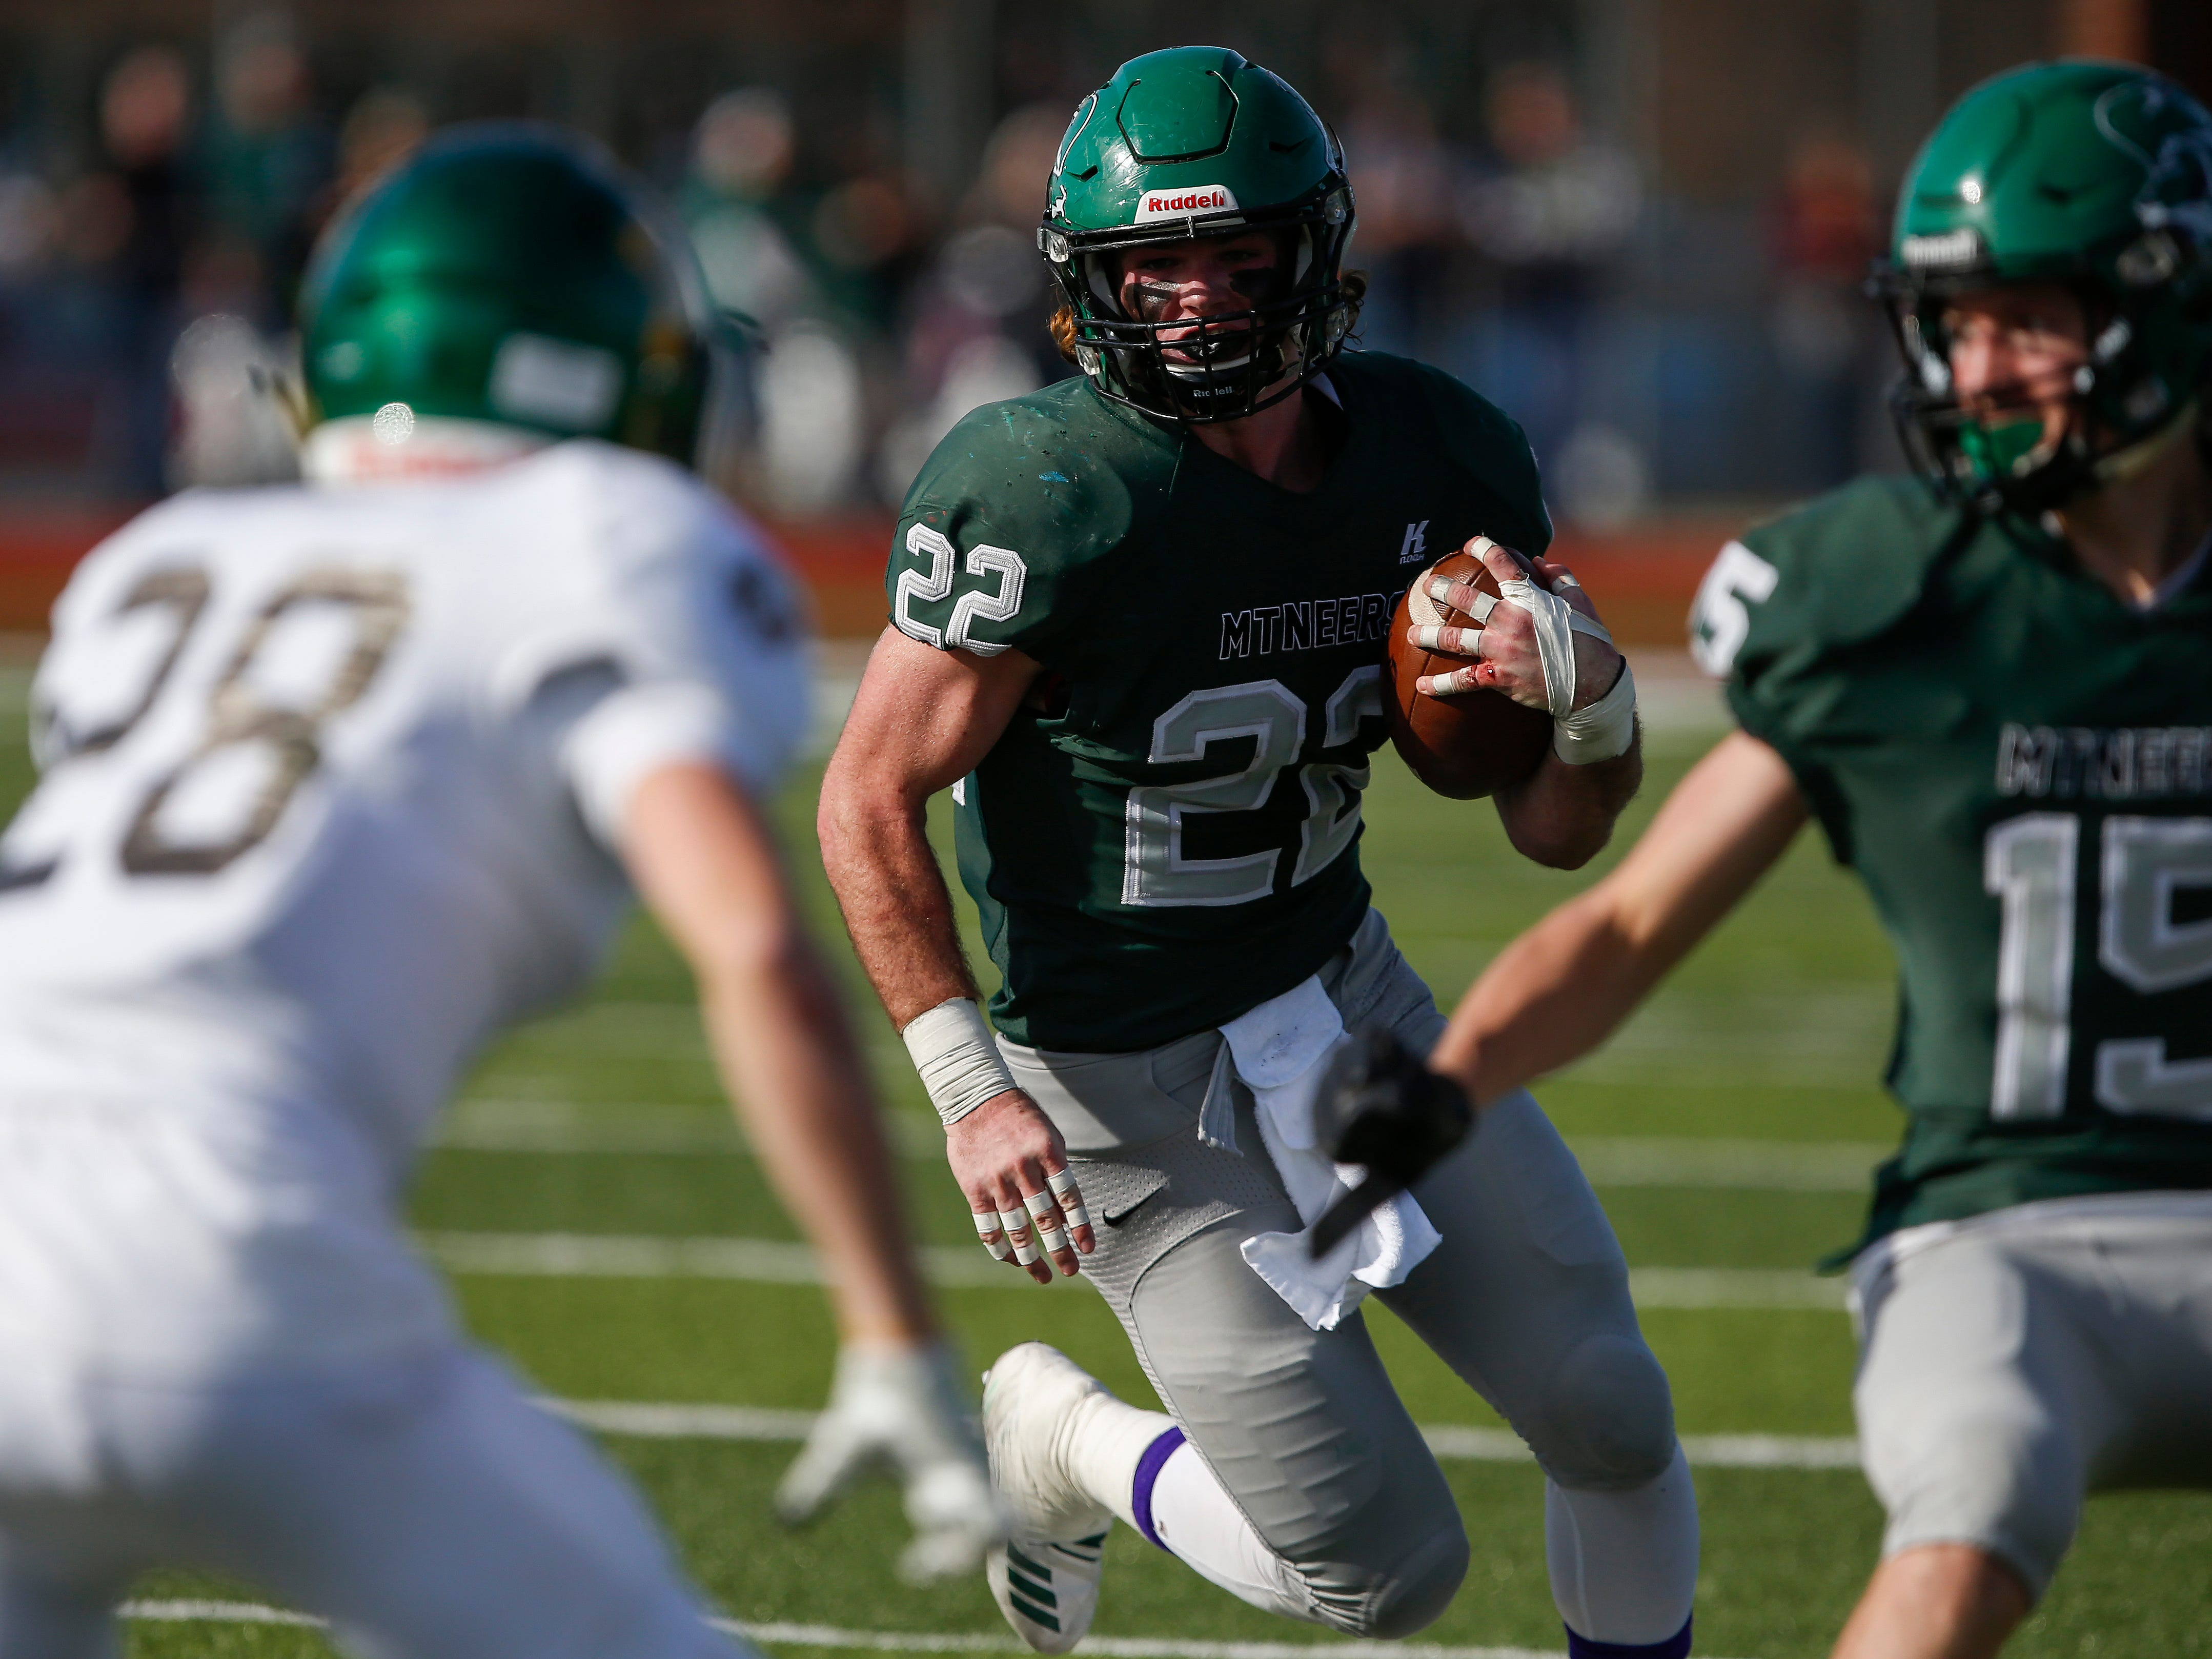 Will Boswell, of Mount Vernon, runs the ball in the Mountaineers 26-18 win in the Class 3 Quarterfinal game against Springfield Catholic at Mount Vernon High School on Saturday, Nov. 17, 2018.